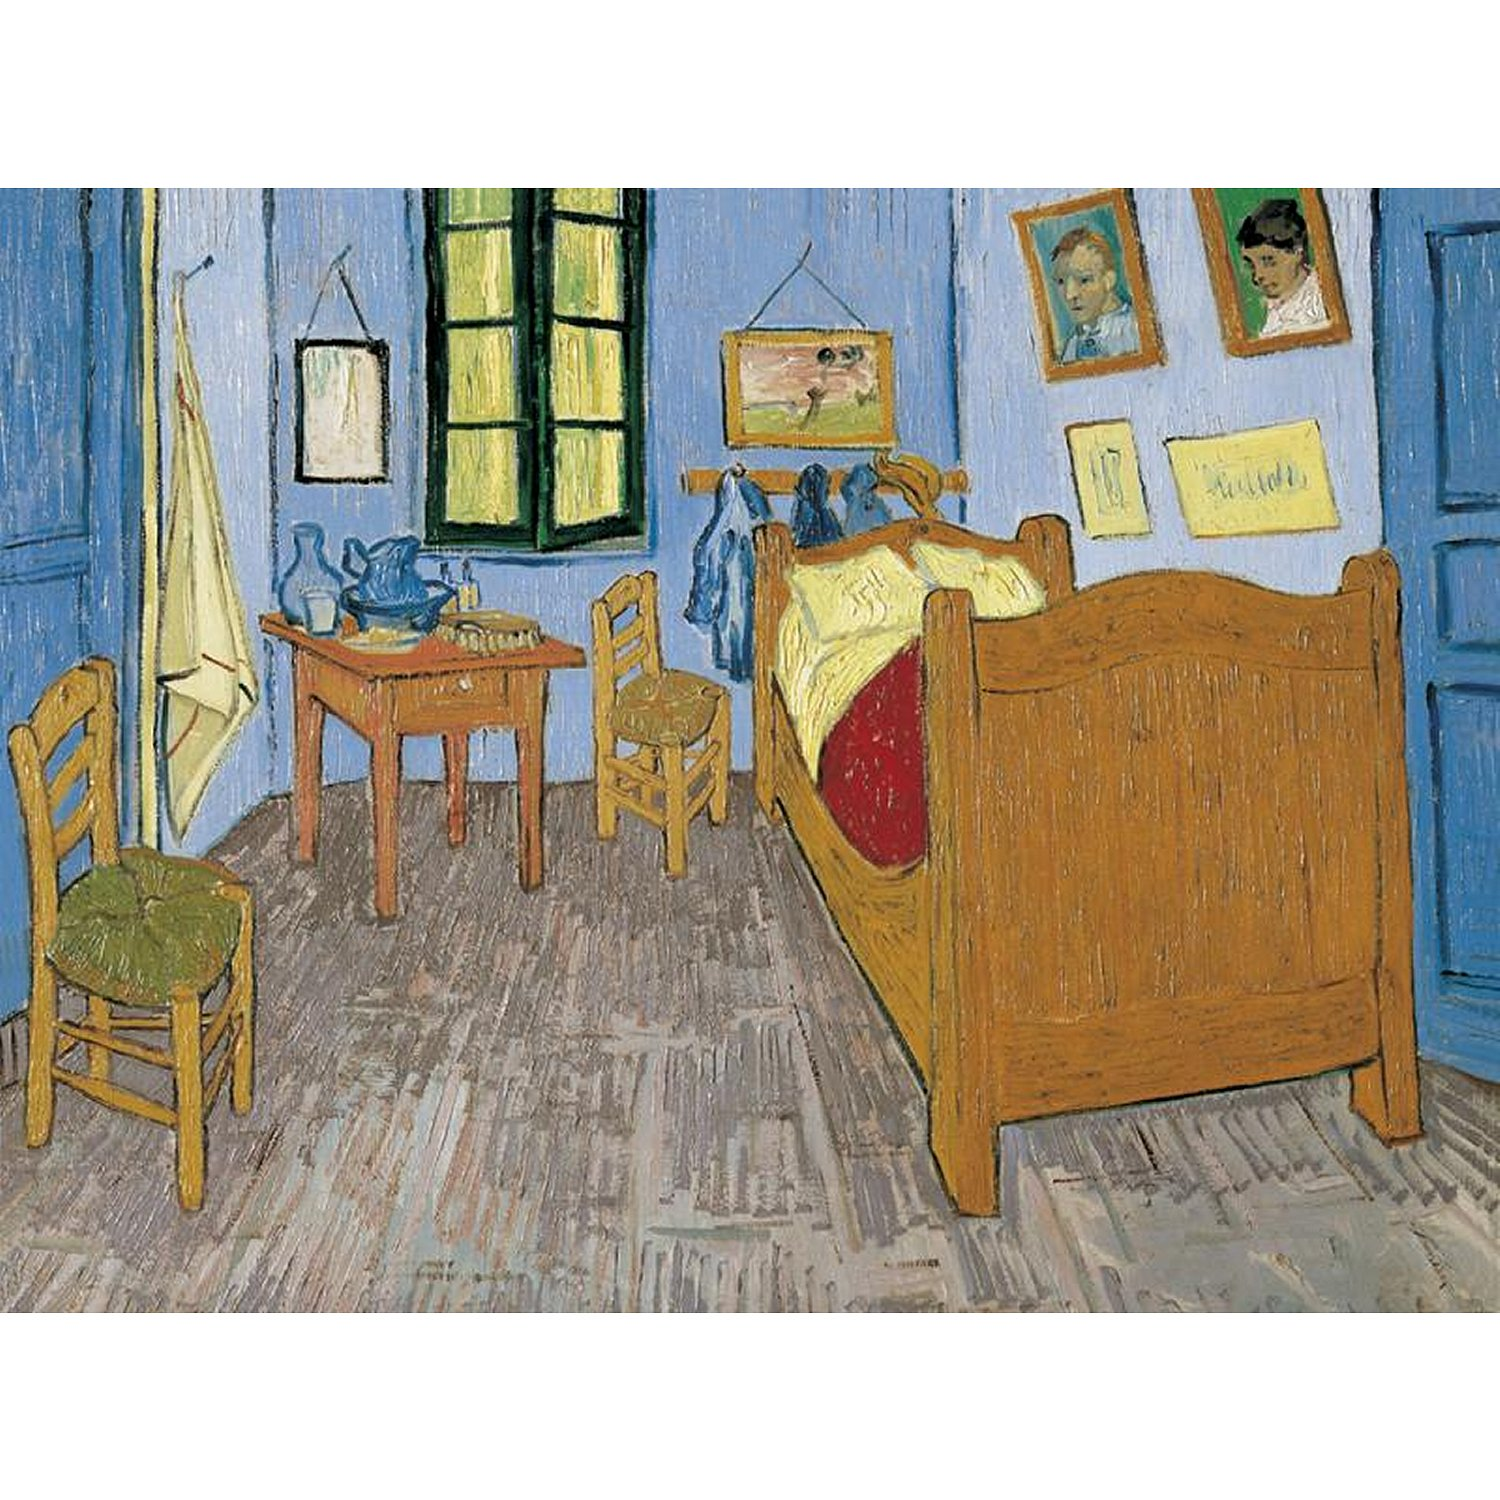 vincent van gogh: schlafzimmer in arles - 1000 teile - clementoni